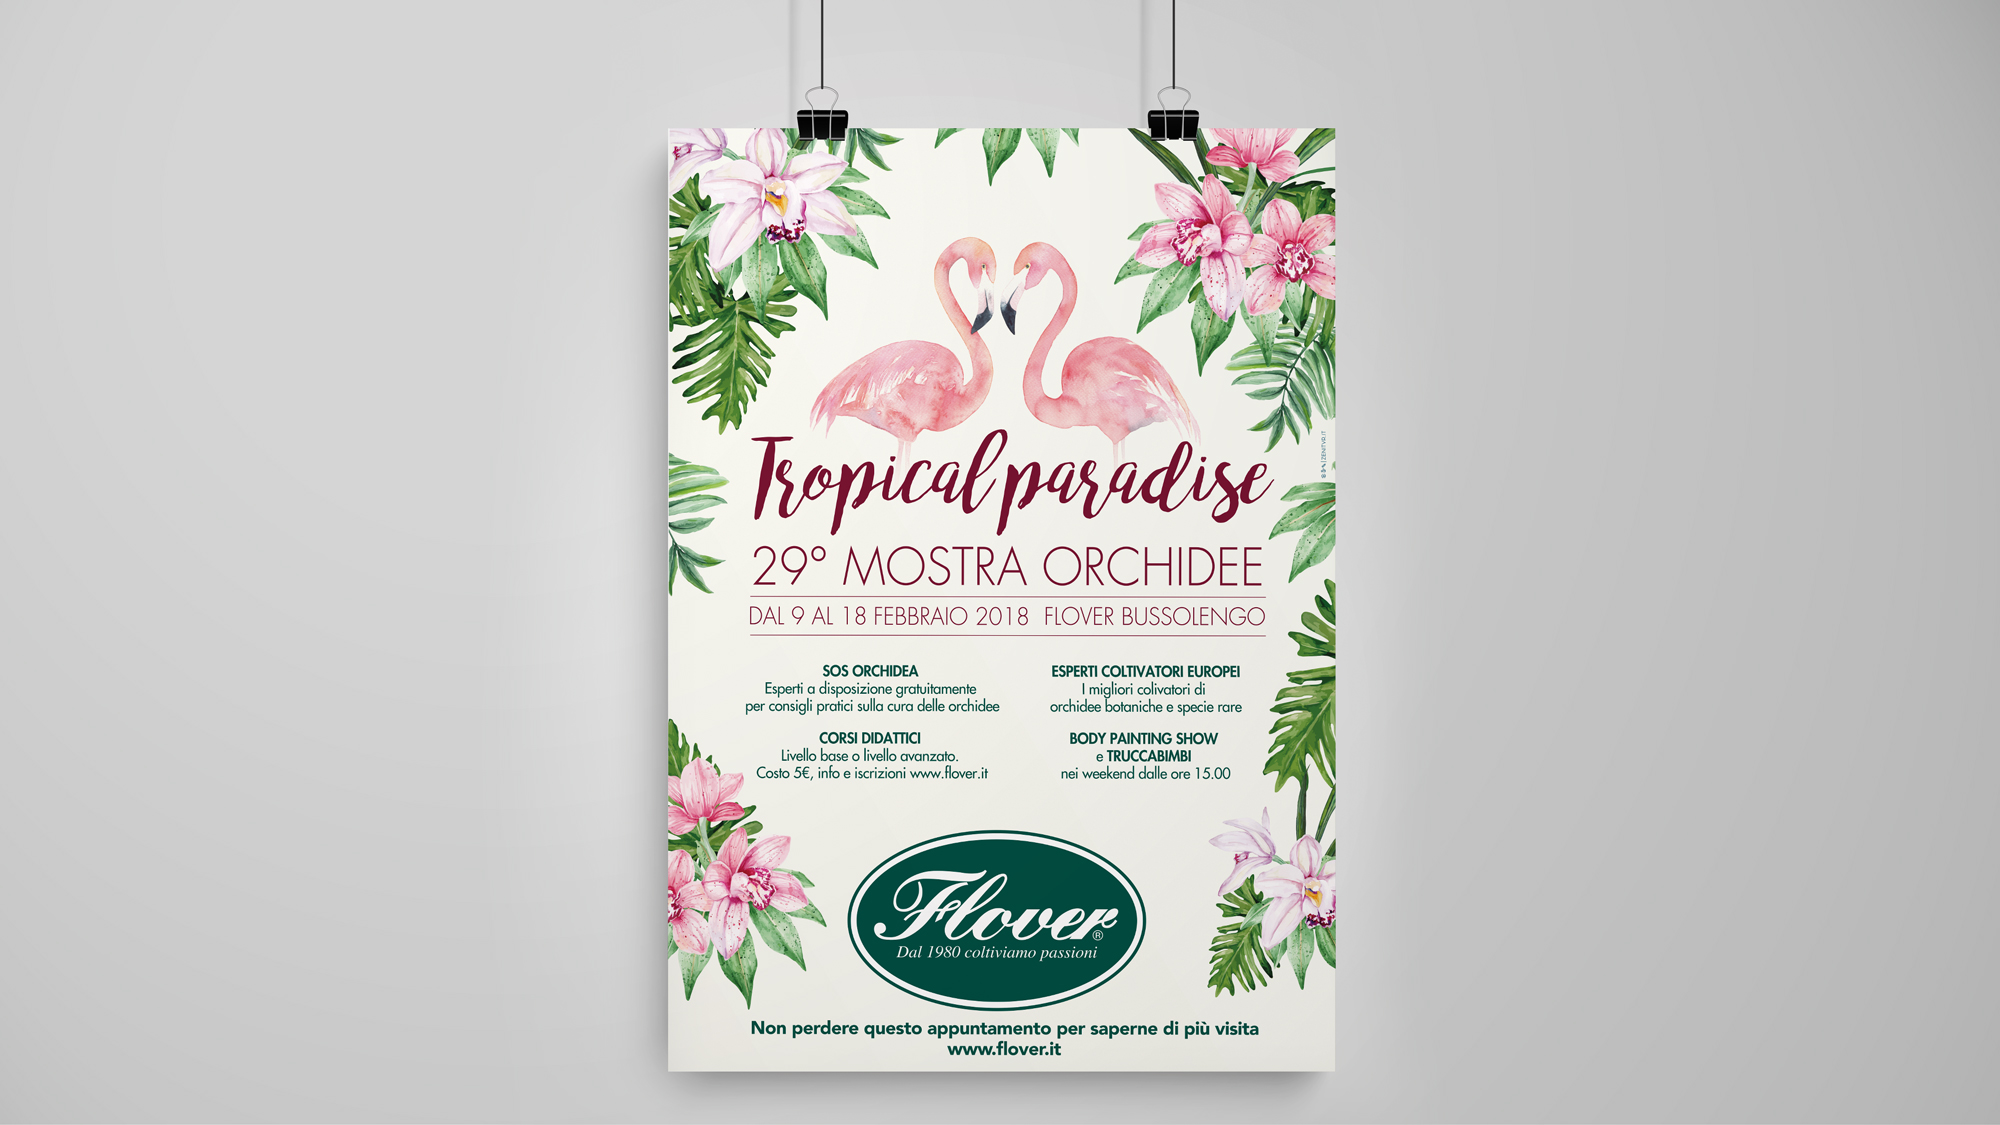 02_Flover_orchidee_poster